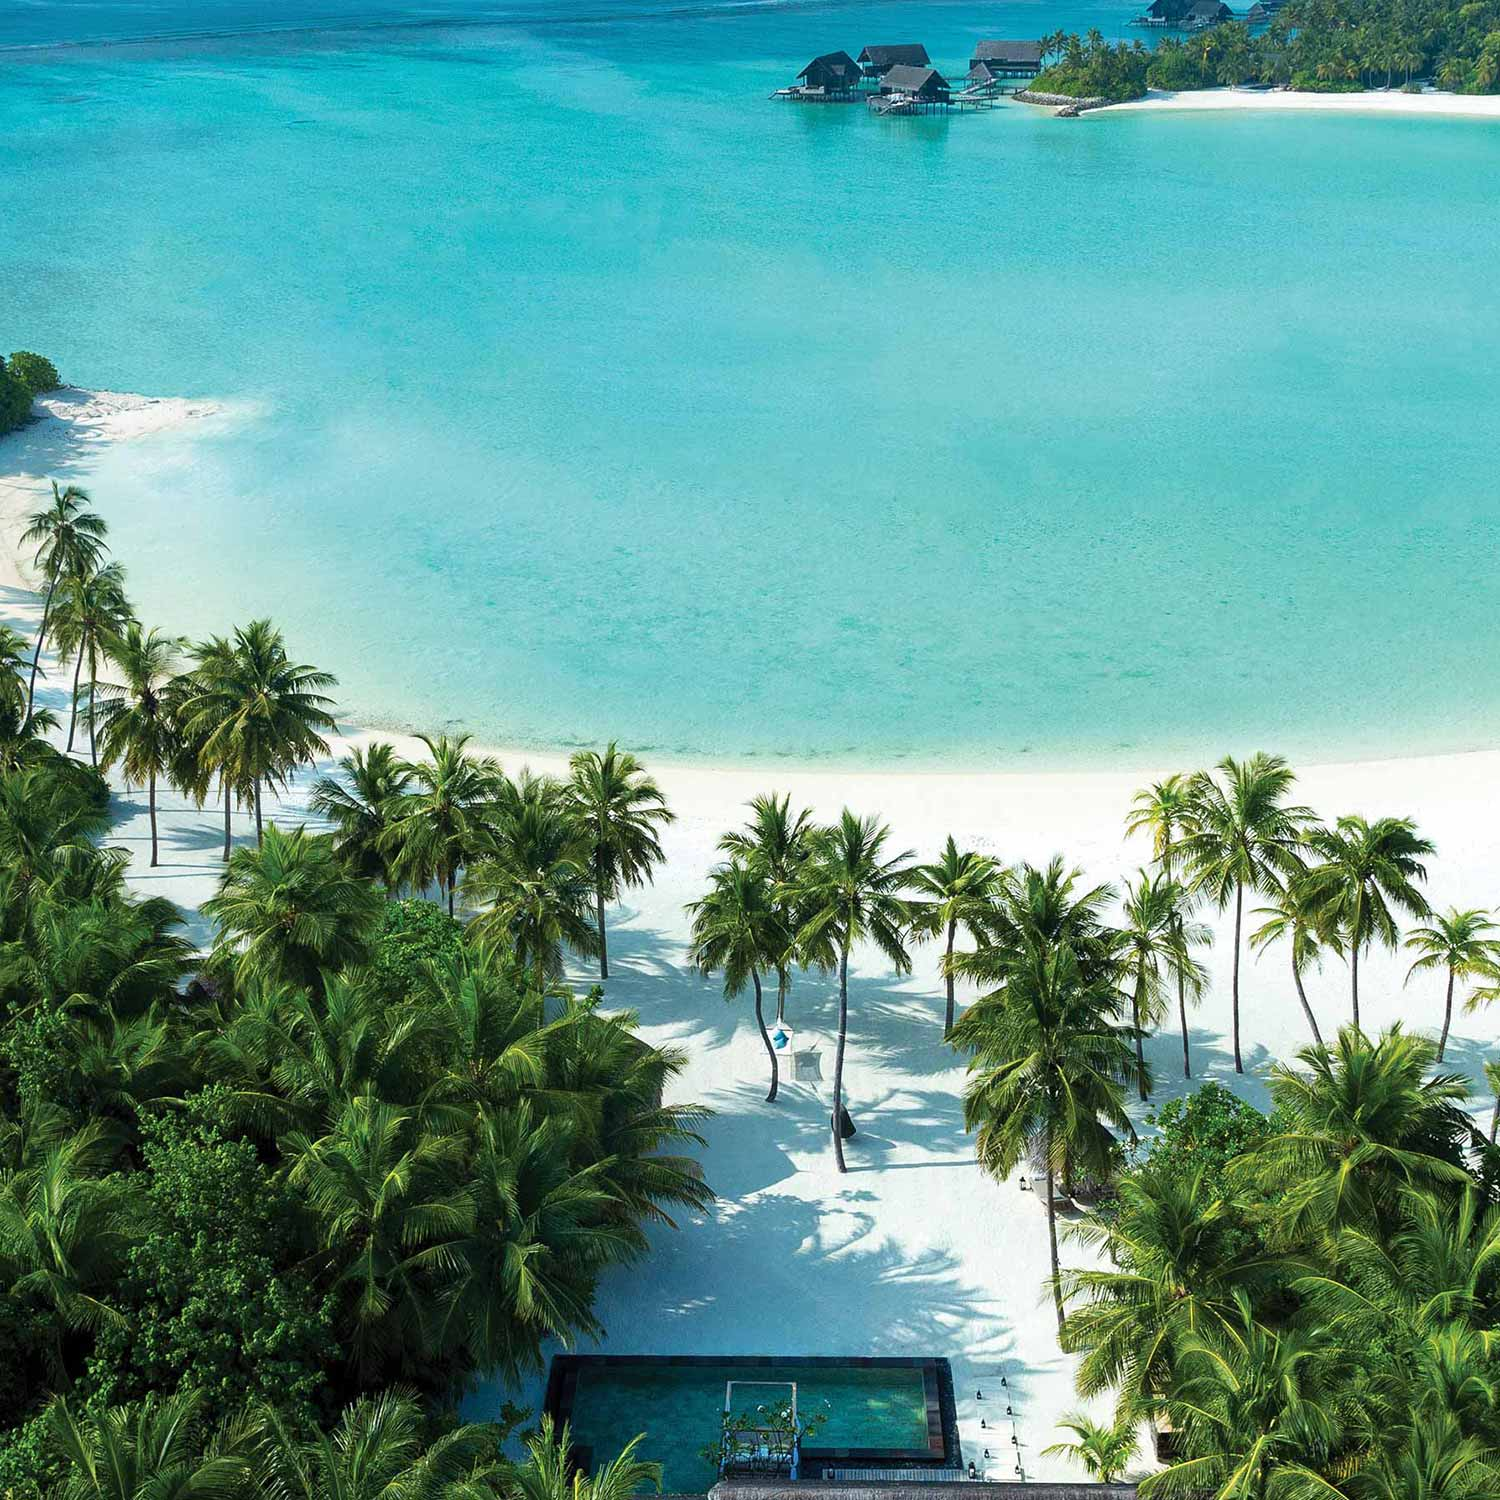 Beach and Relaxation Vacation through Le Grande Butler Travel